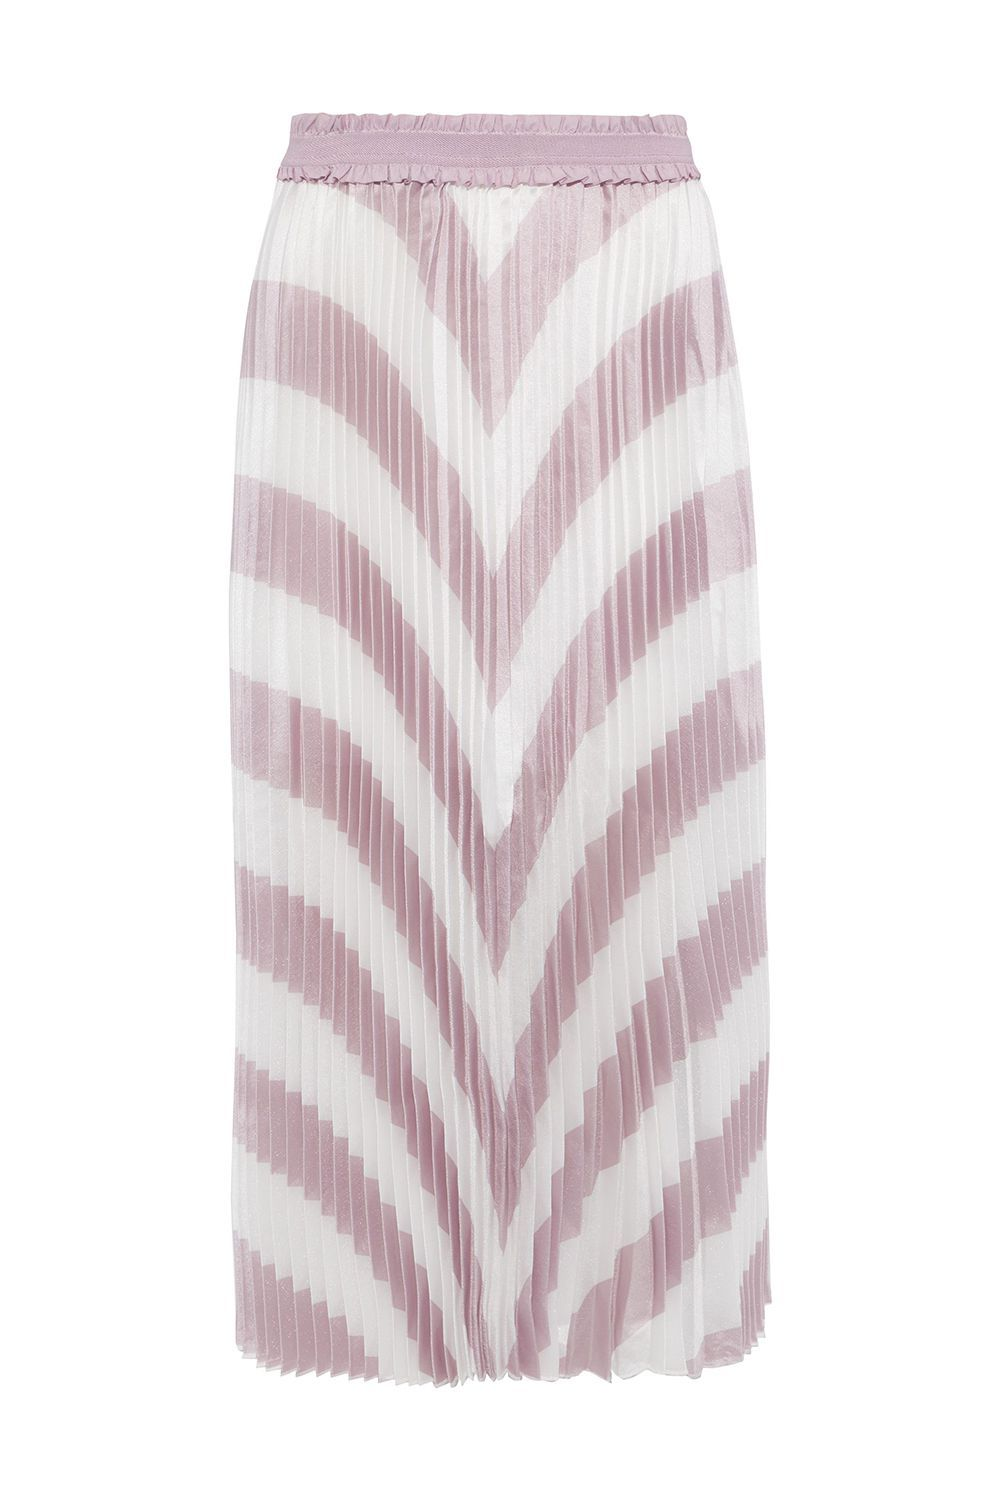 A Pleated Woven Skirt Maje theoutnet.com $129.00 SHOP IT This Maje skirt is unlike any of the other options on this list, which is a good thing if you're looking for that special piece. It has pleats, an iridescent sheen, and a lovely soft lavender color that's easy on the eyes.